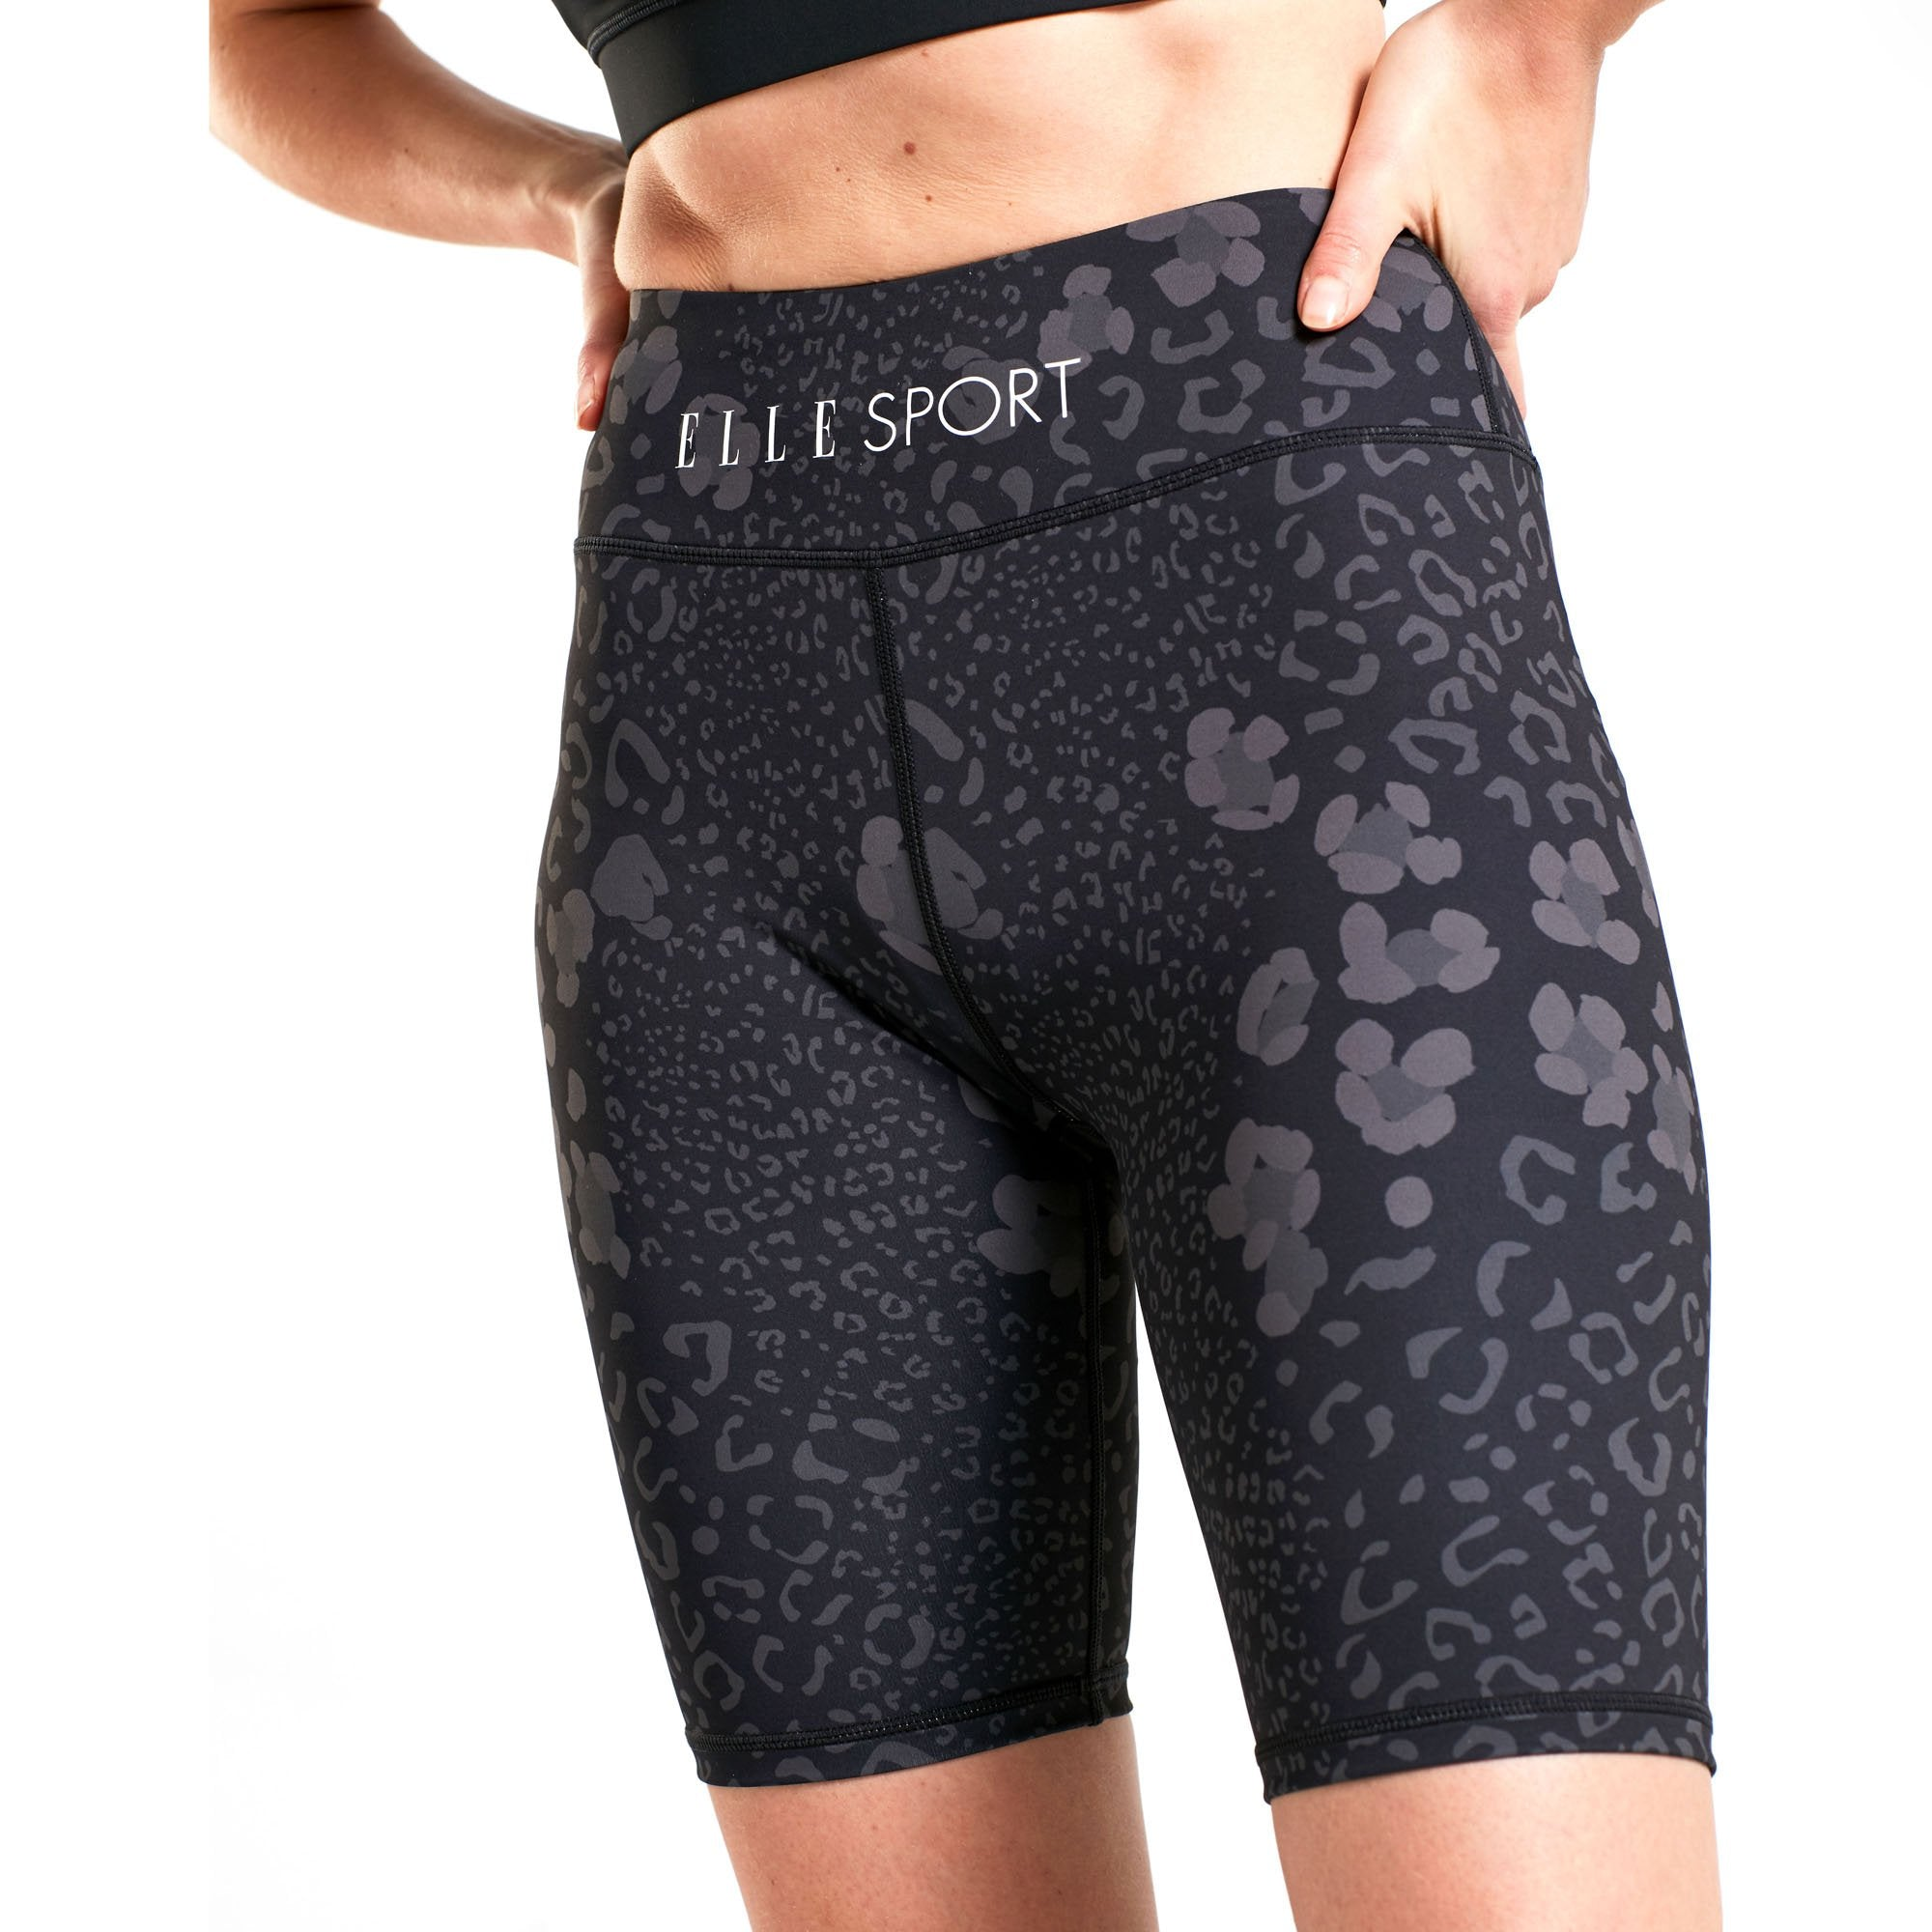 Image of Elle Sport Cycling Shorts - Pack of 2